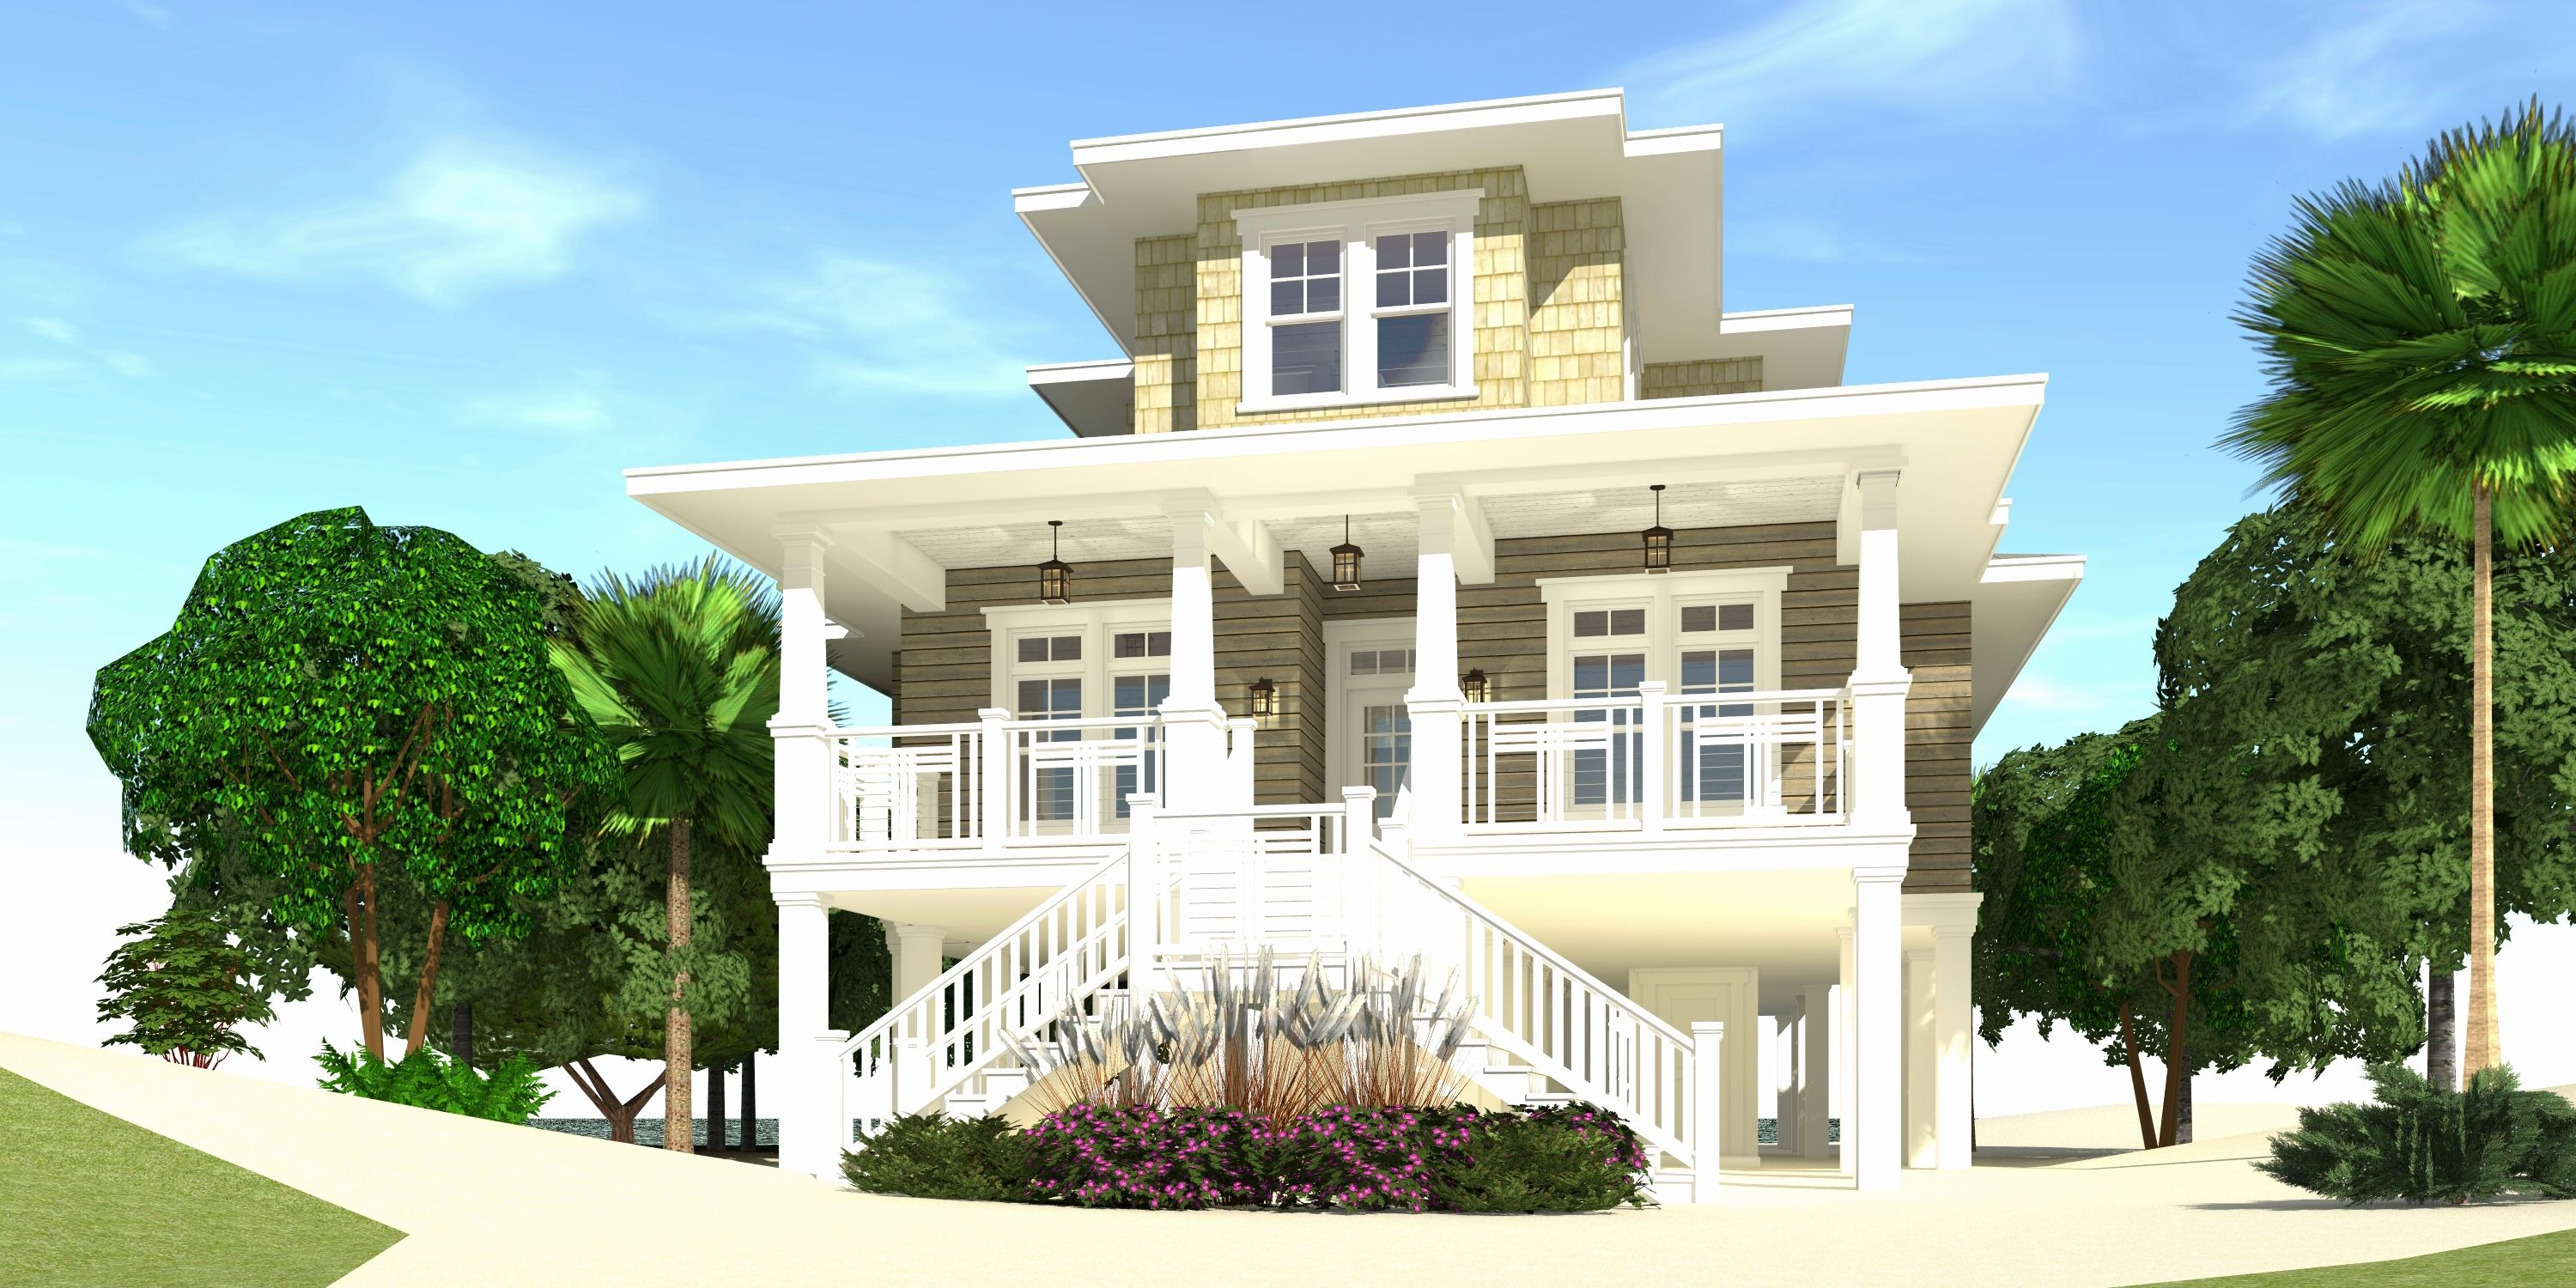 Key West Style House Plans With Wall White Wood Cottage Exterior Beach Cottage Style Guest Cottage